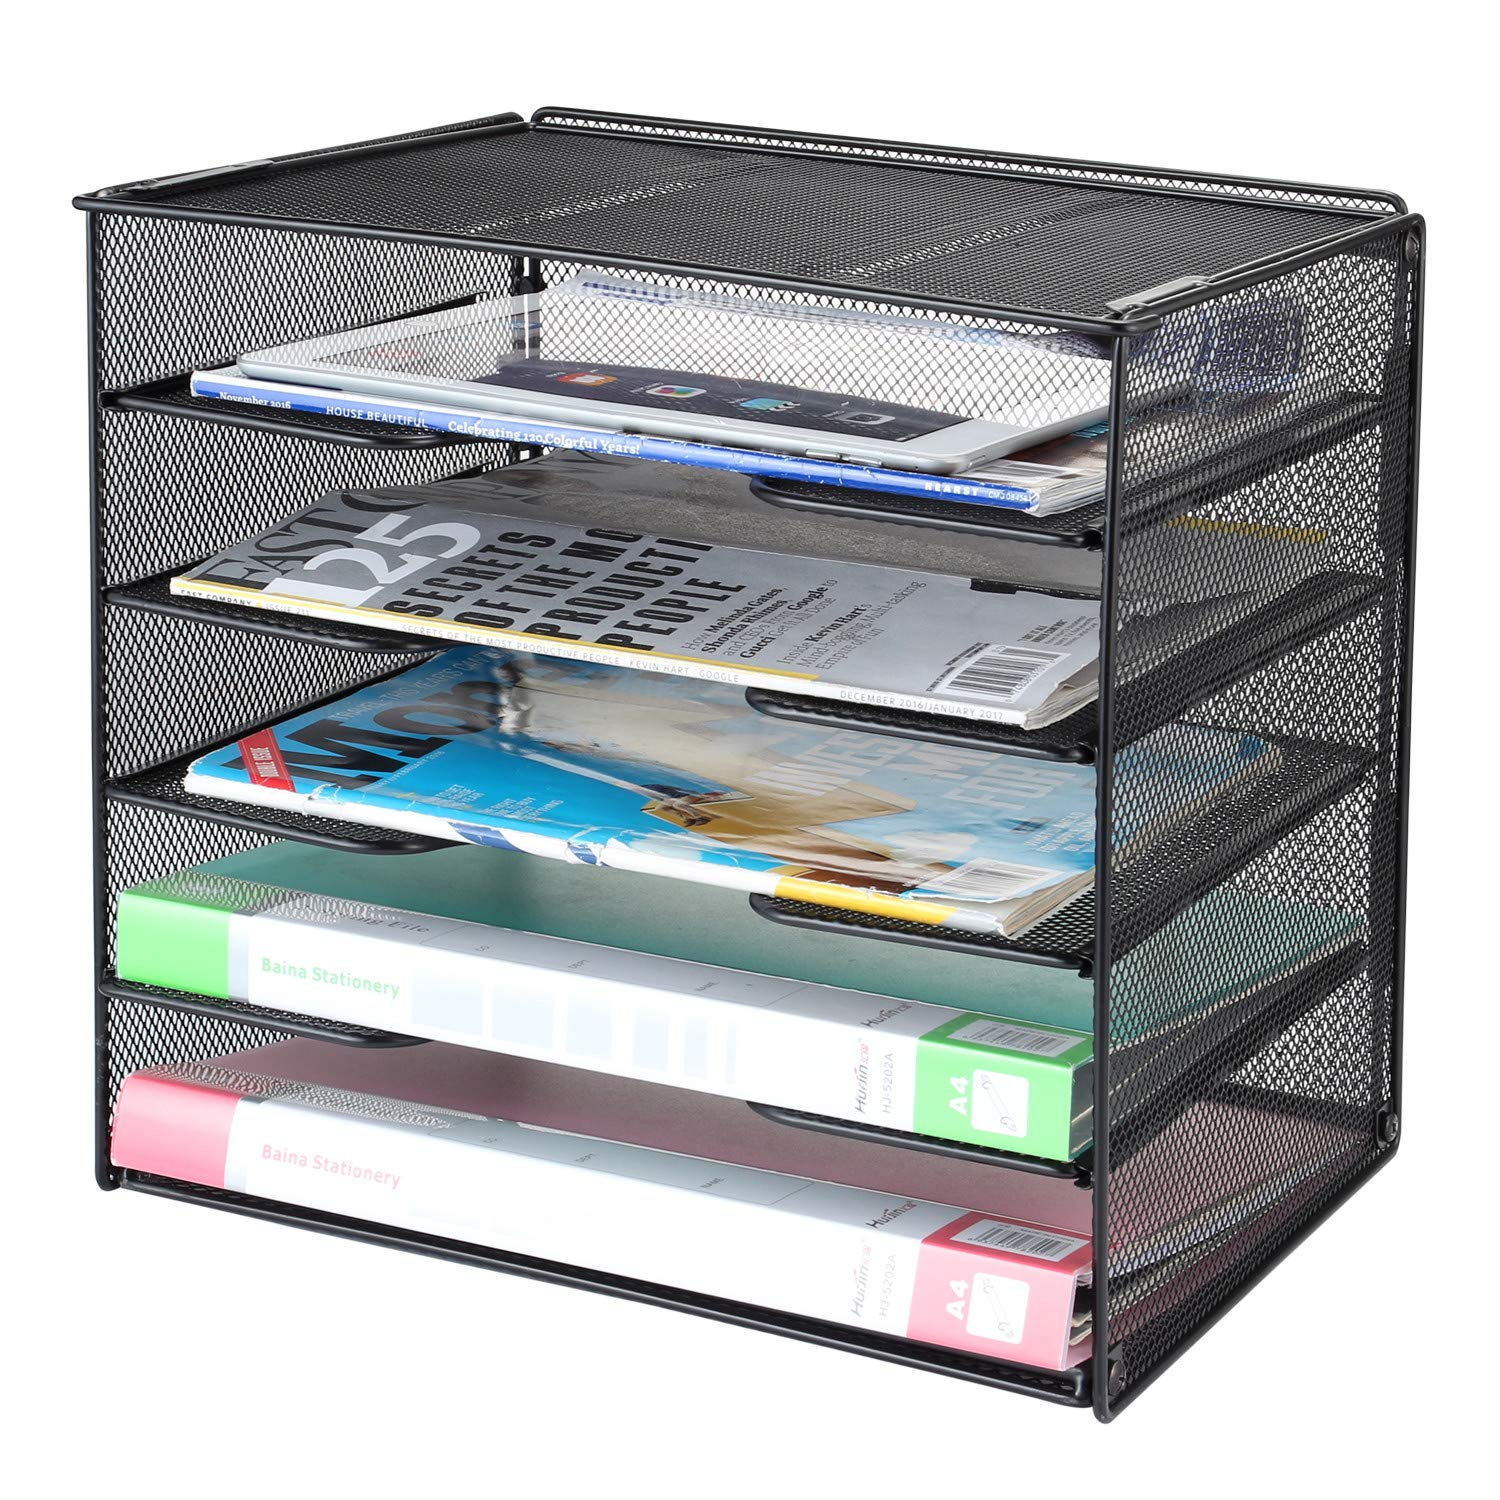 Samstar Desk Organizer, Mesh File Paper Letter Tray with 5 Stackable Trays and Sorter, Black